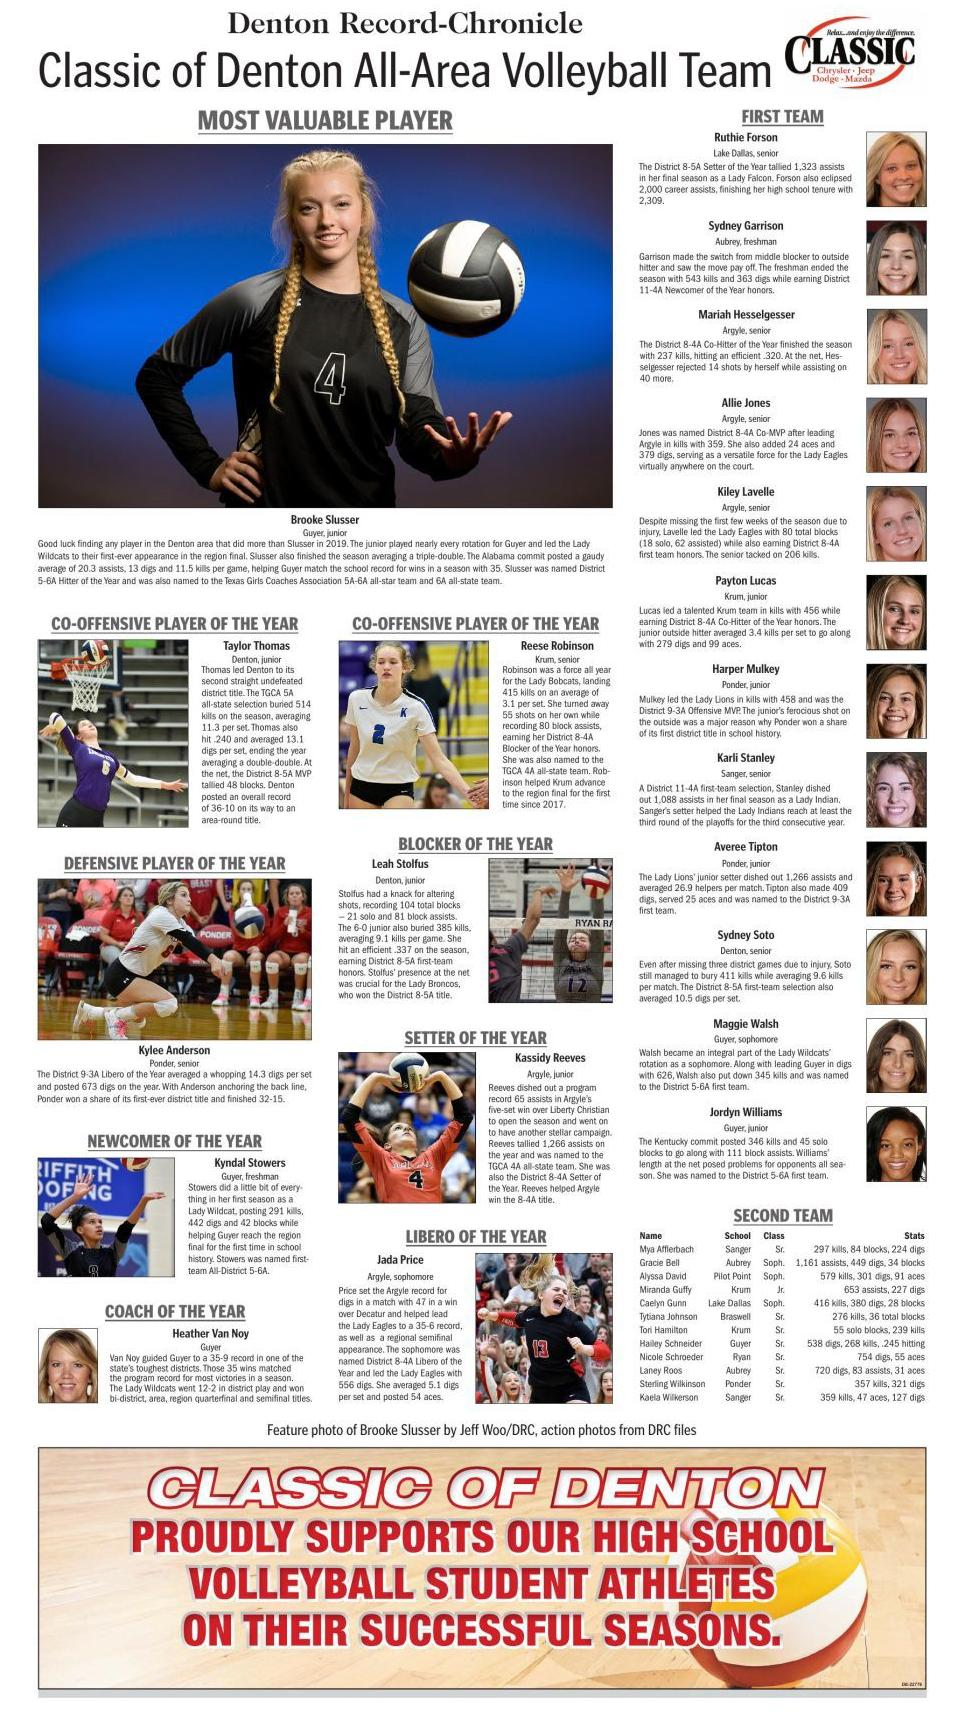 Denton Record-Chronicle All-Area Volleyball Team